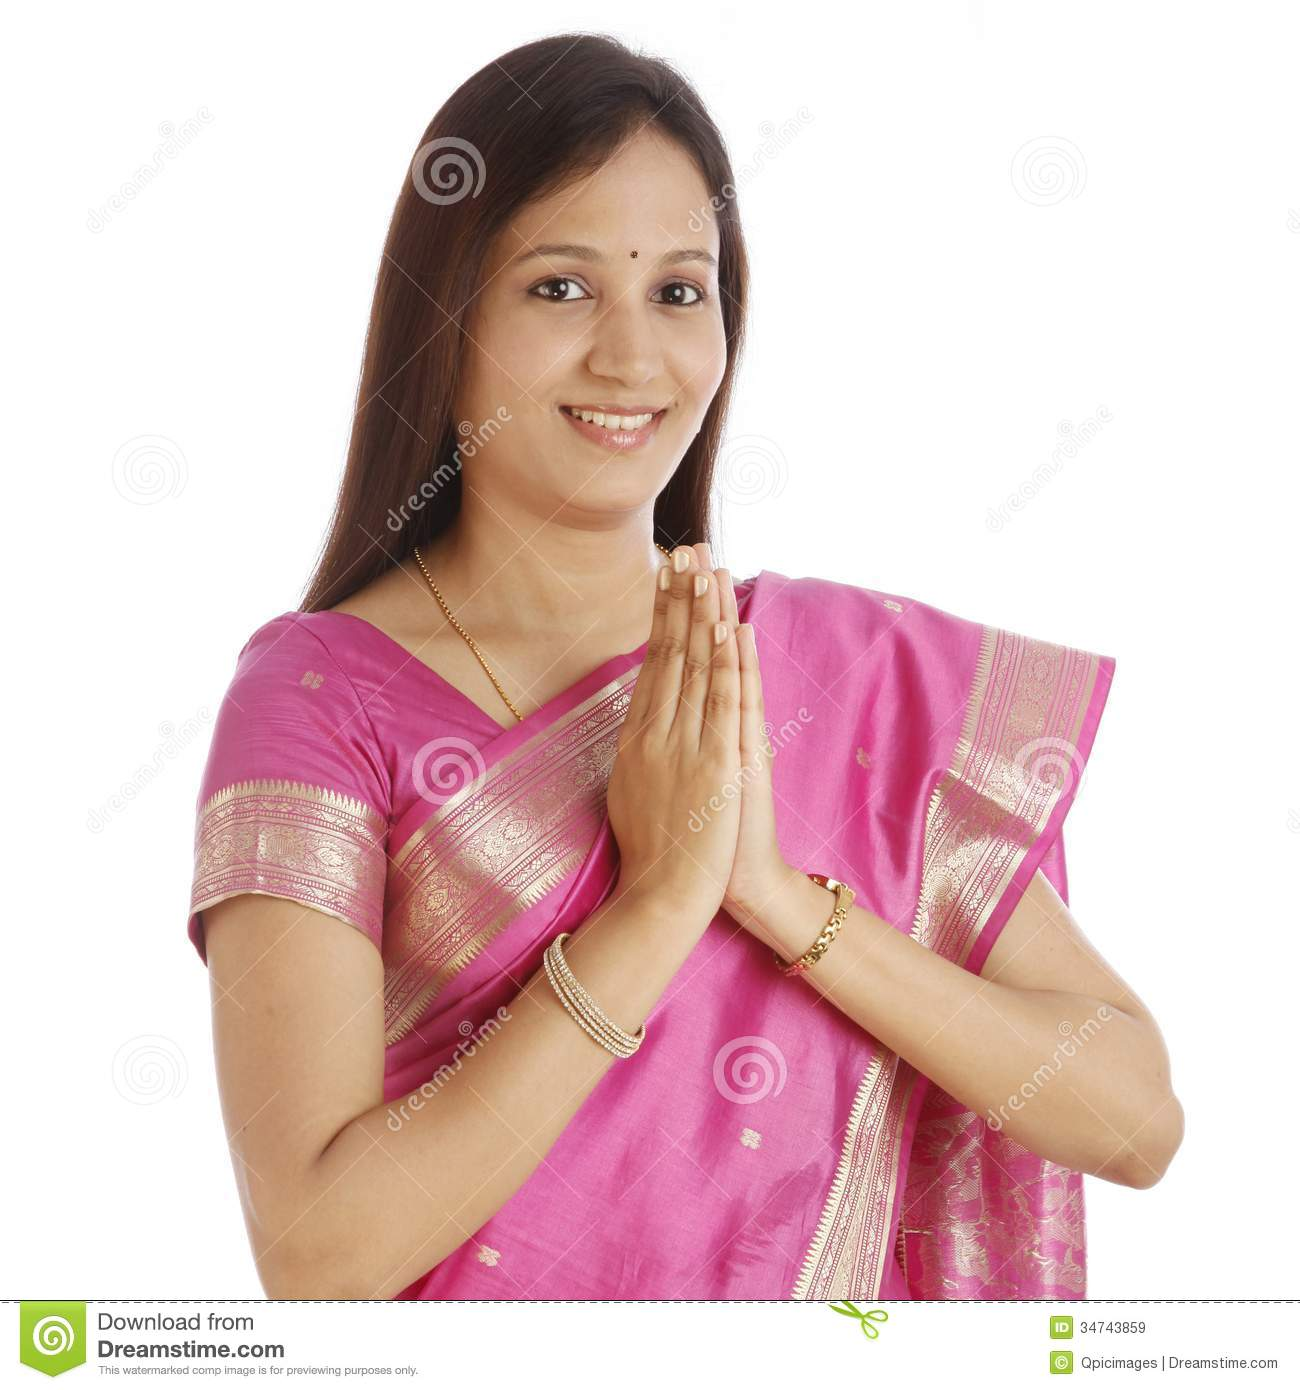 violet hindu single women Single women in india are not subject to this cultural reported too that indian single women who refuse to marry are experiencing violence within their.